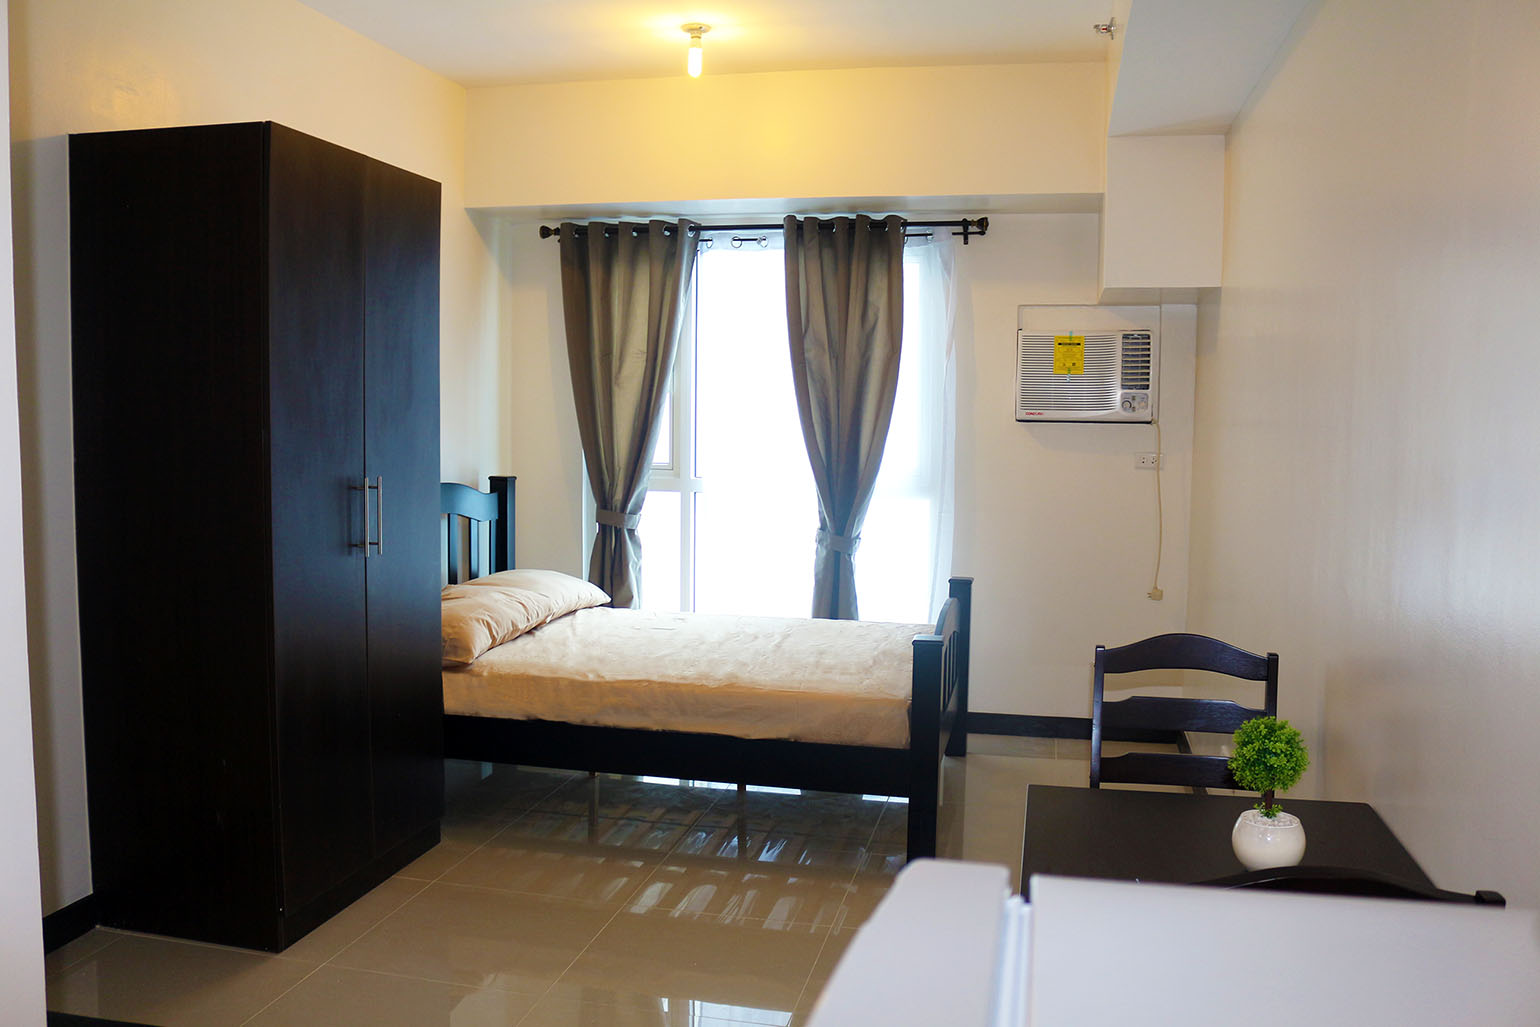 Affordable Studio Type For Rent In Mandaluyong Axis